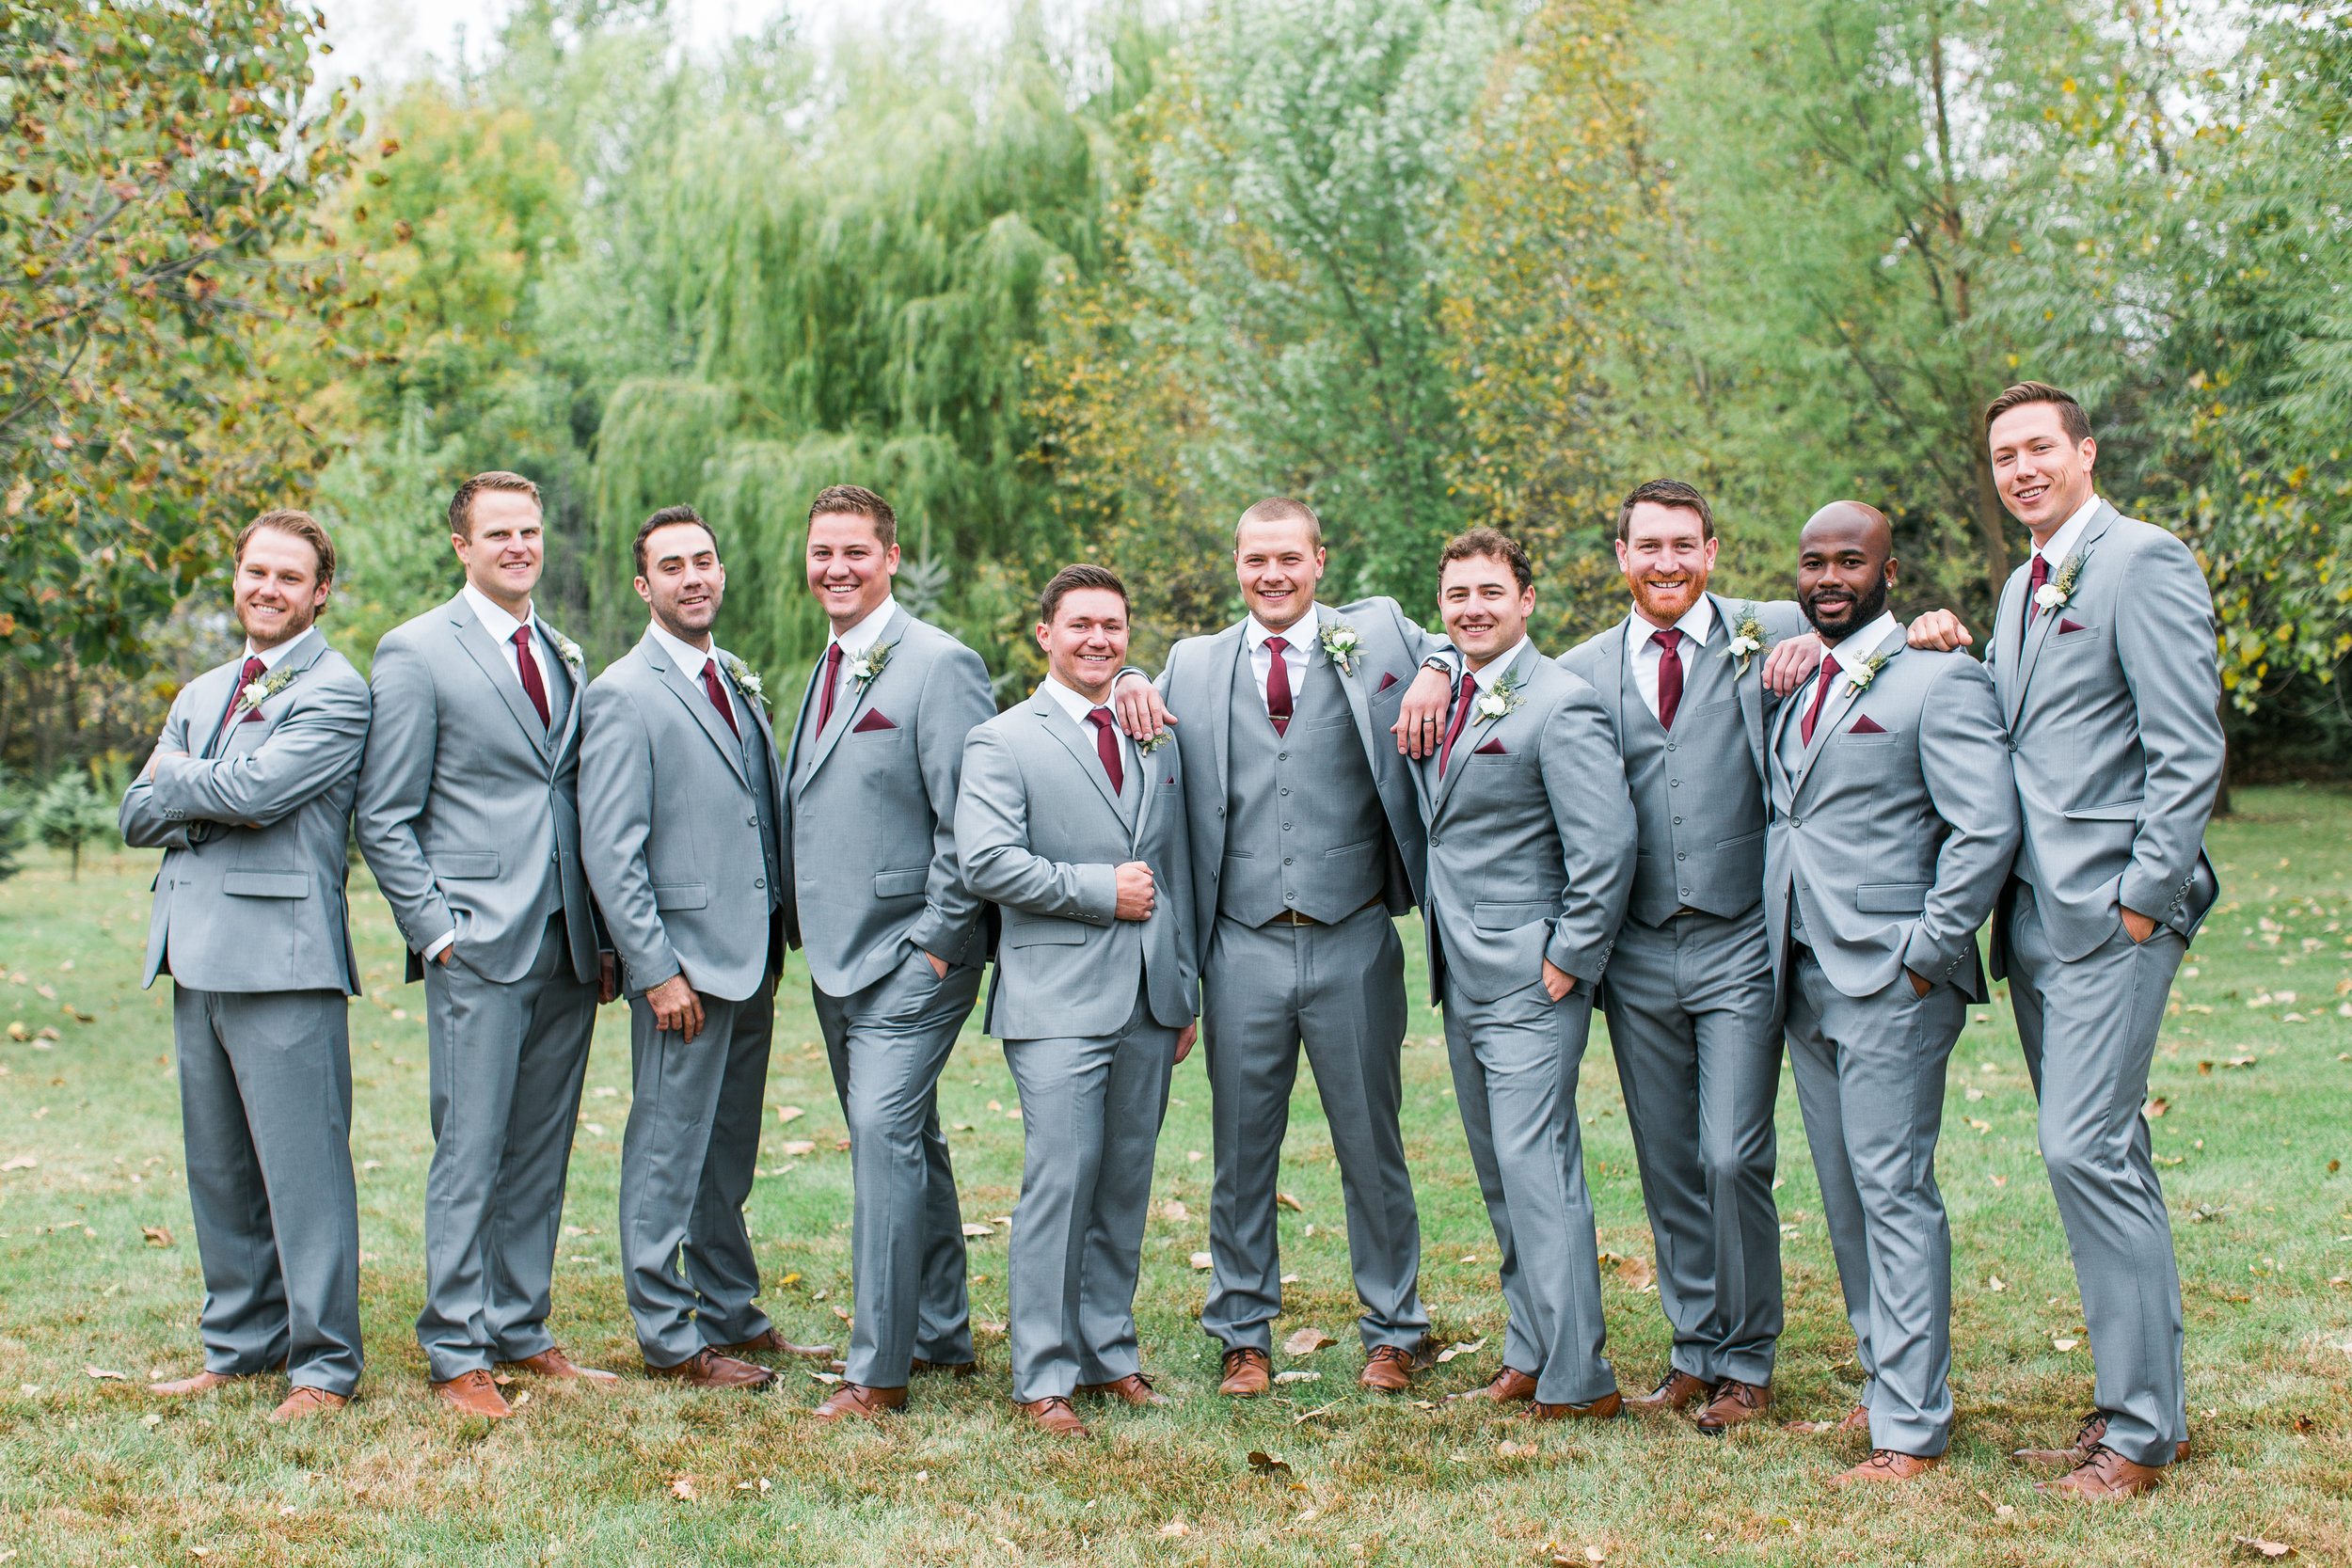 Groomsmen in gray suits with burgundy accents casual pose Minnesota backyard fall wedding Minnesota wedding photography Mallory Kiesow Photography